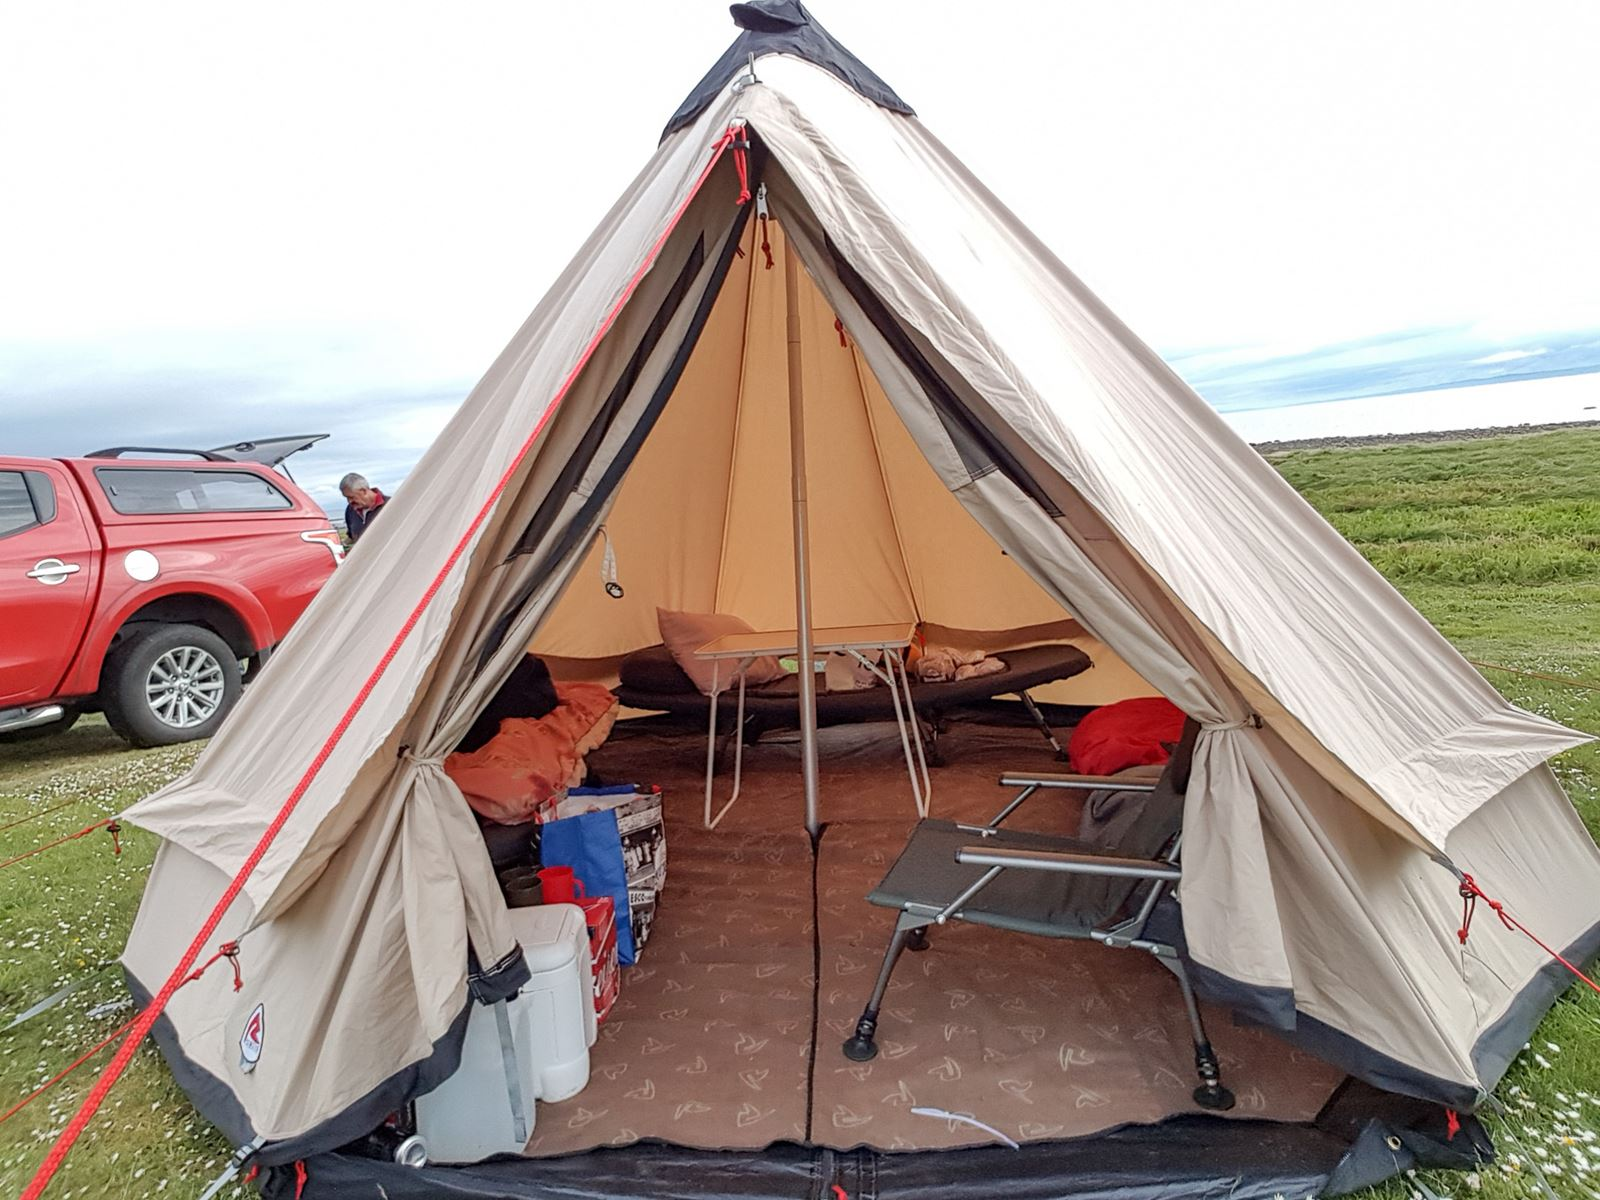 Our base camp for a week - complete with carpet and very comfortable beds.